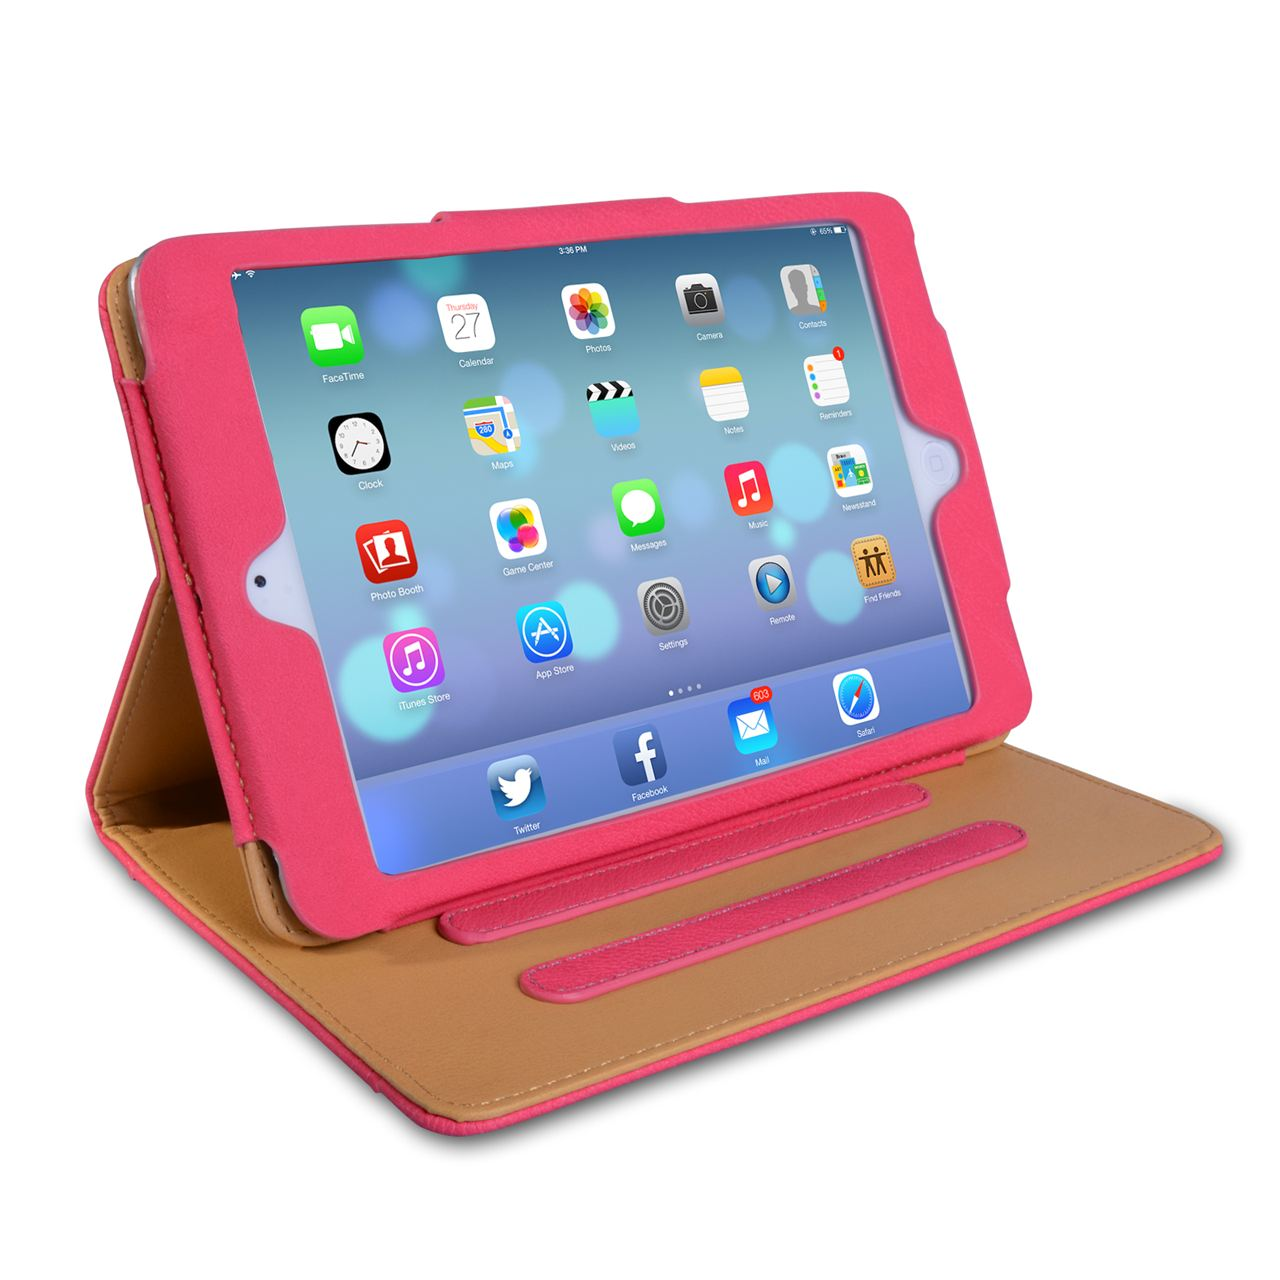 Caseflex iPad Mini 2 Textured Faux Leather Flip Case Hot Pink and Tan